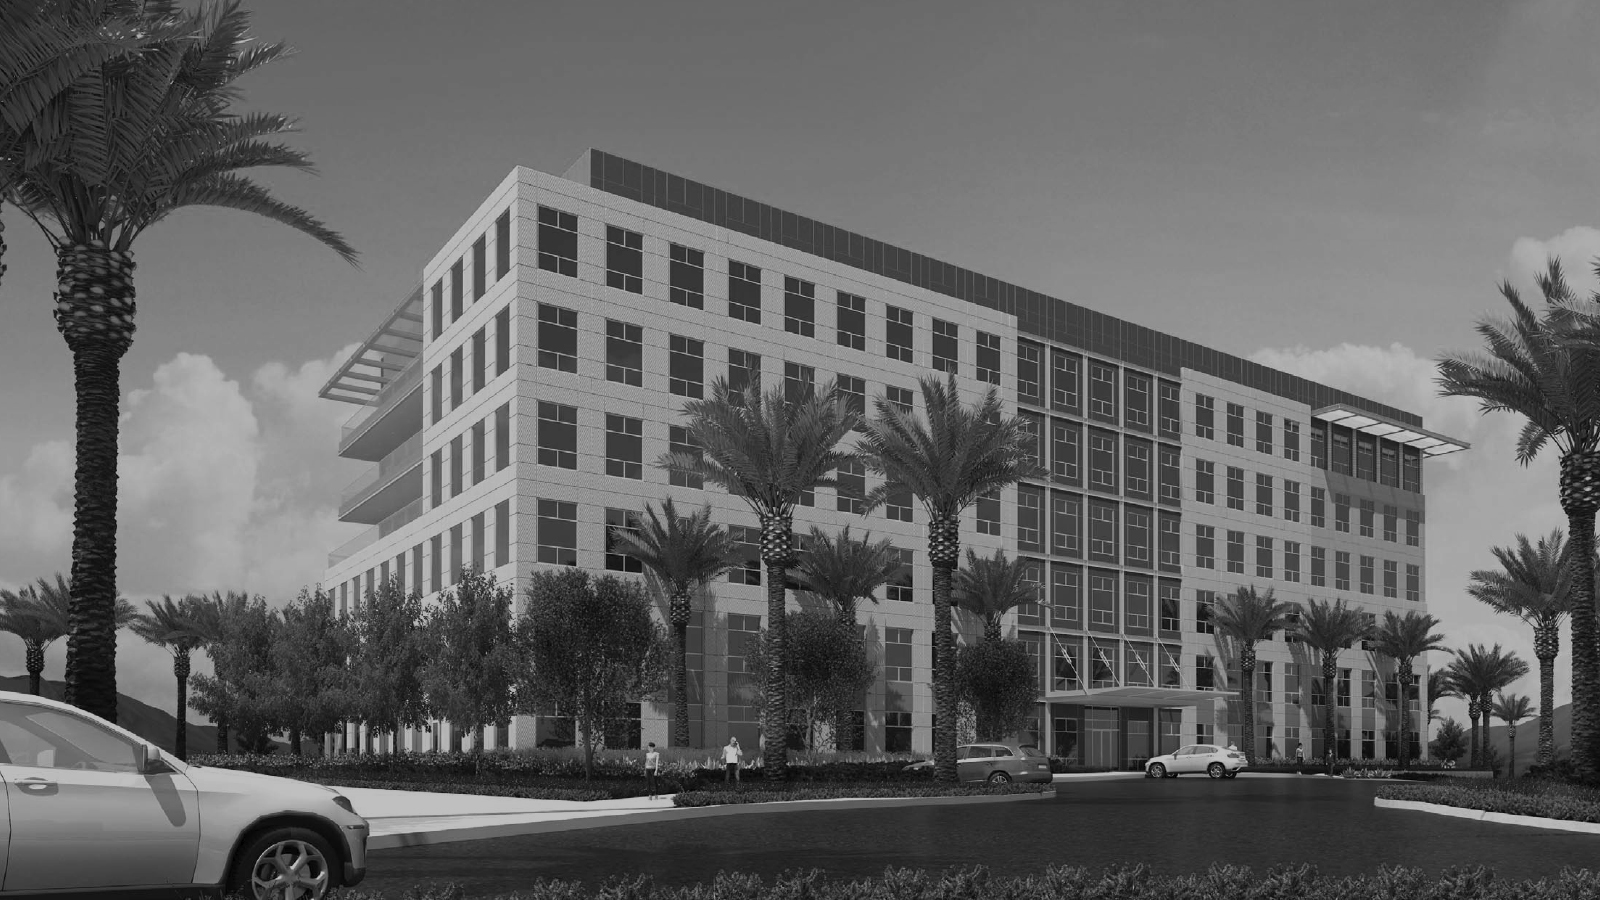 stylized, B&W photo of EV&A ARCHITECTS - TWO SUMMERLIN OFFICE BUILDING